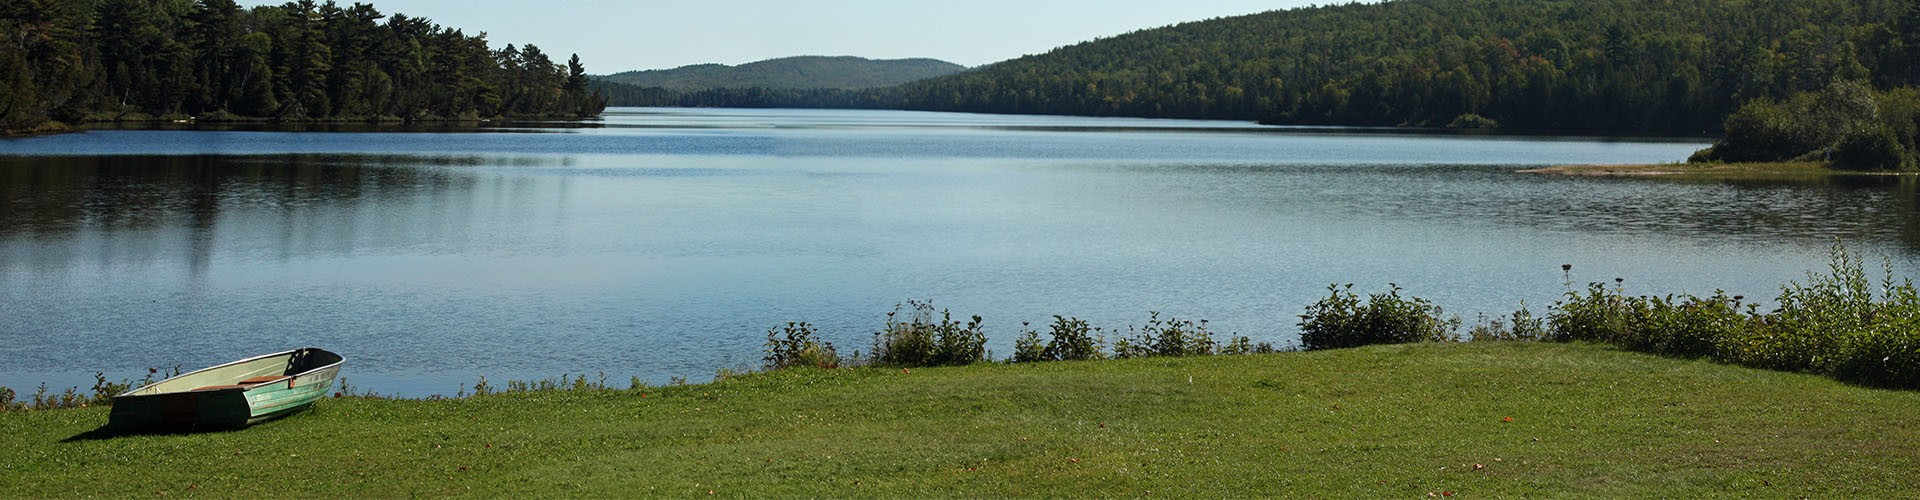 lake fanny hooe at copper harbor